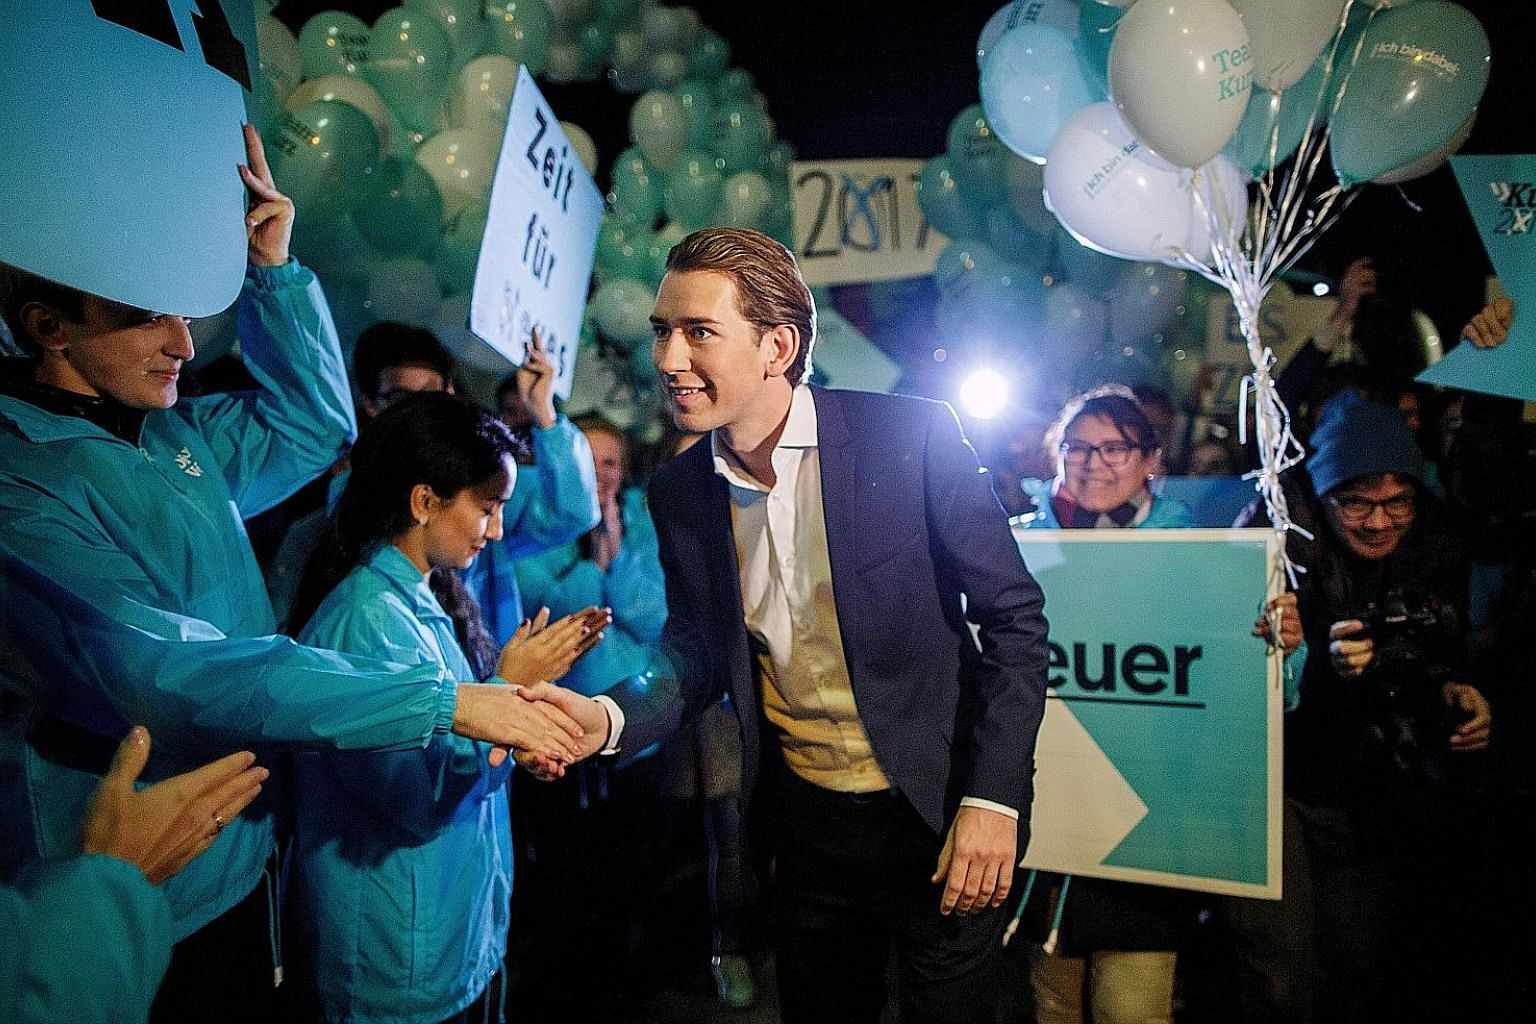 Mr Sebastian Kurz, who became Austria's foreign minister at the age of 27, greeting supporters in Vienna last Tuesday. The leader of the centre-right Austrian People's Party will have to reassure the migrant population that he can pull back from the